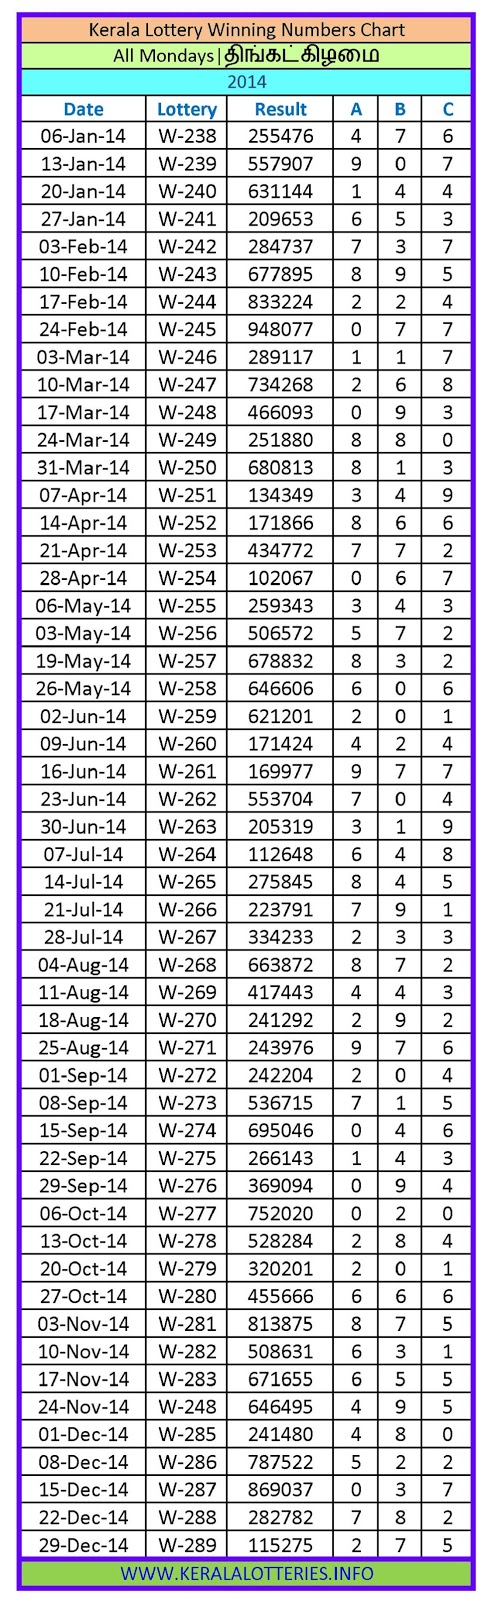 Kerala Lottery Winning Number Chart Monday -2014